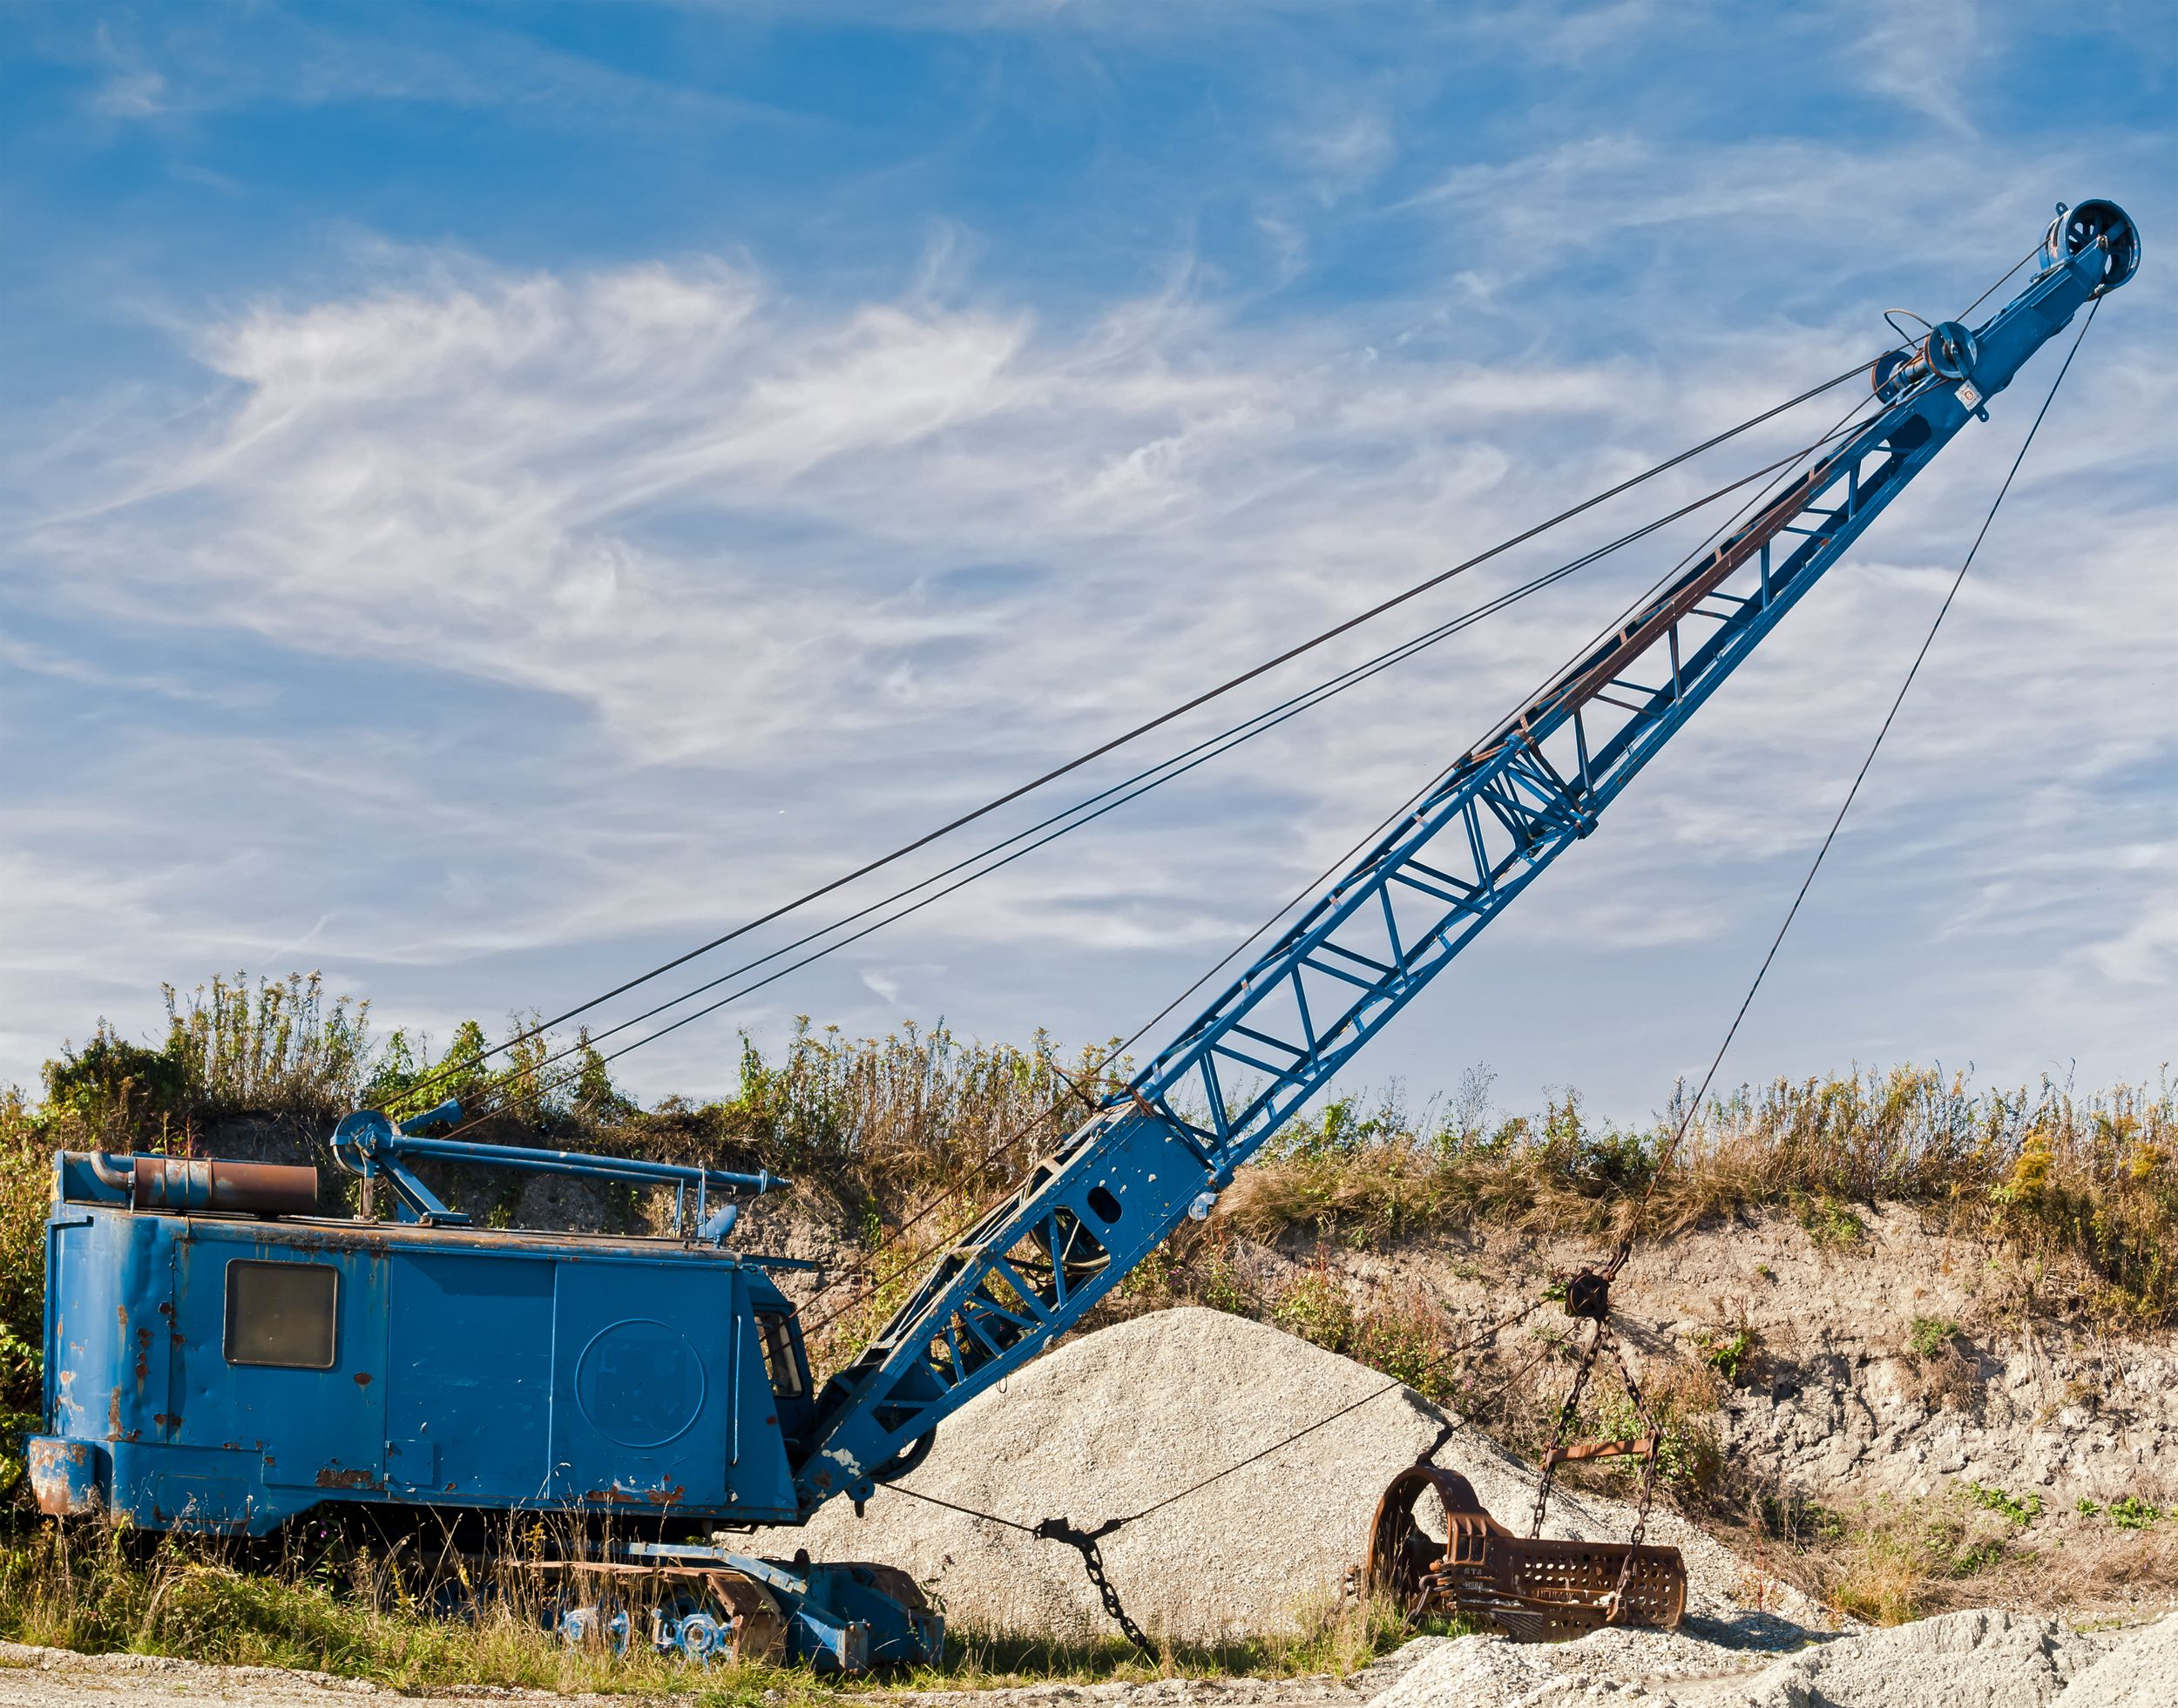 Dragline , Heavy Equipment Used in Construction